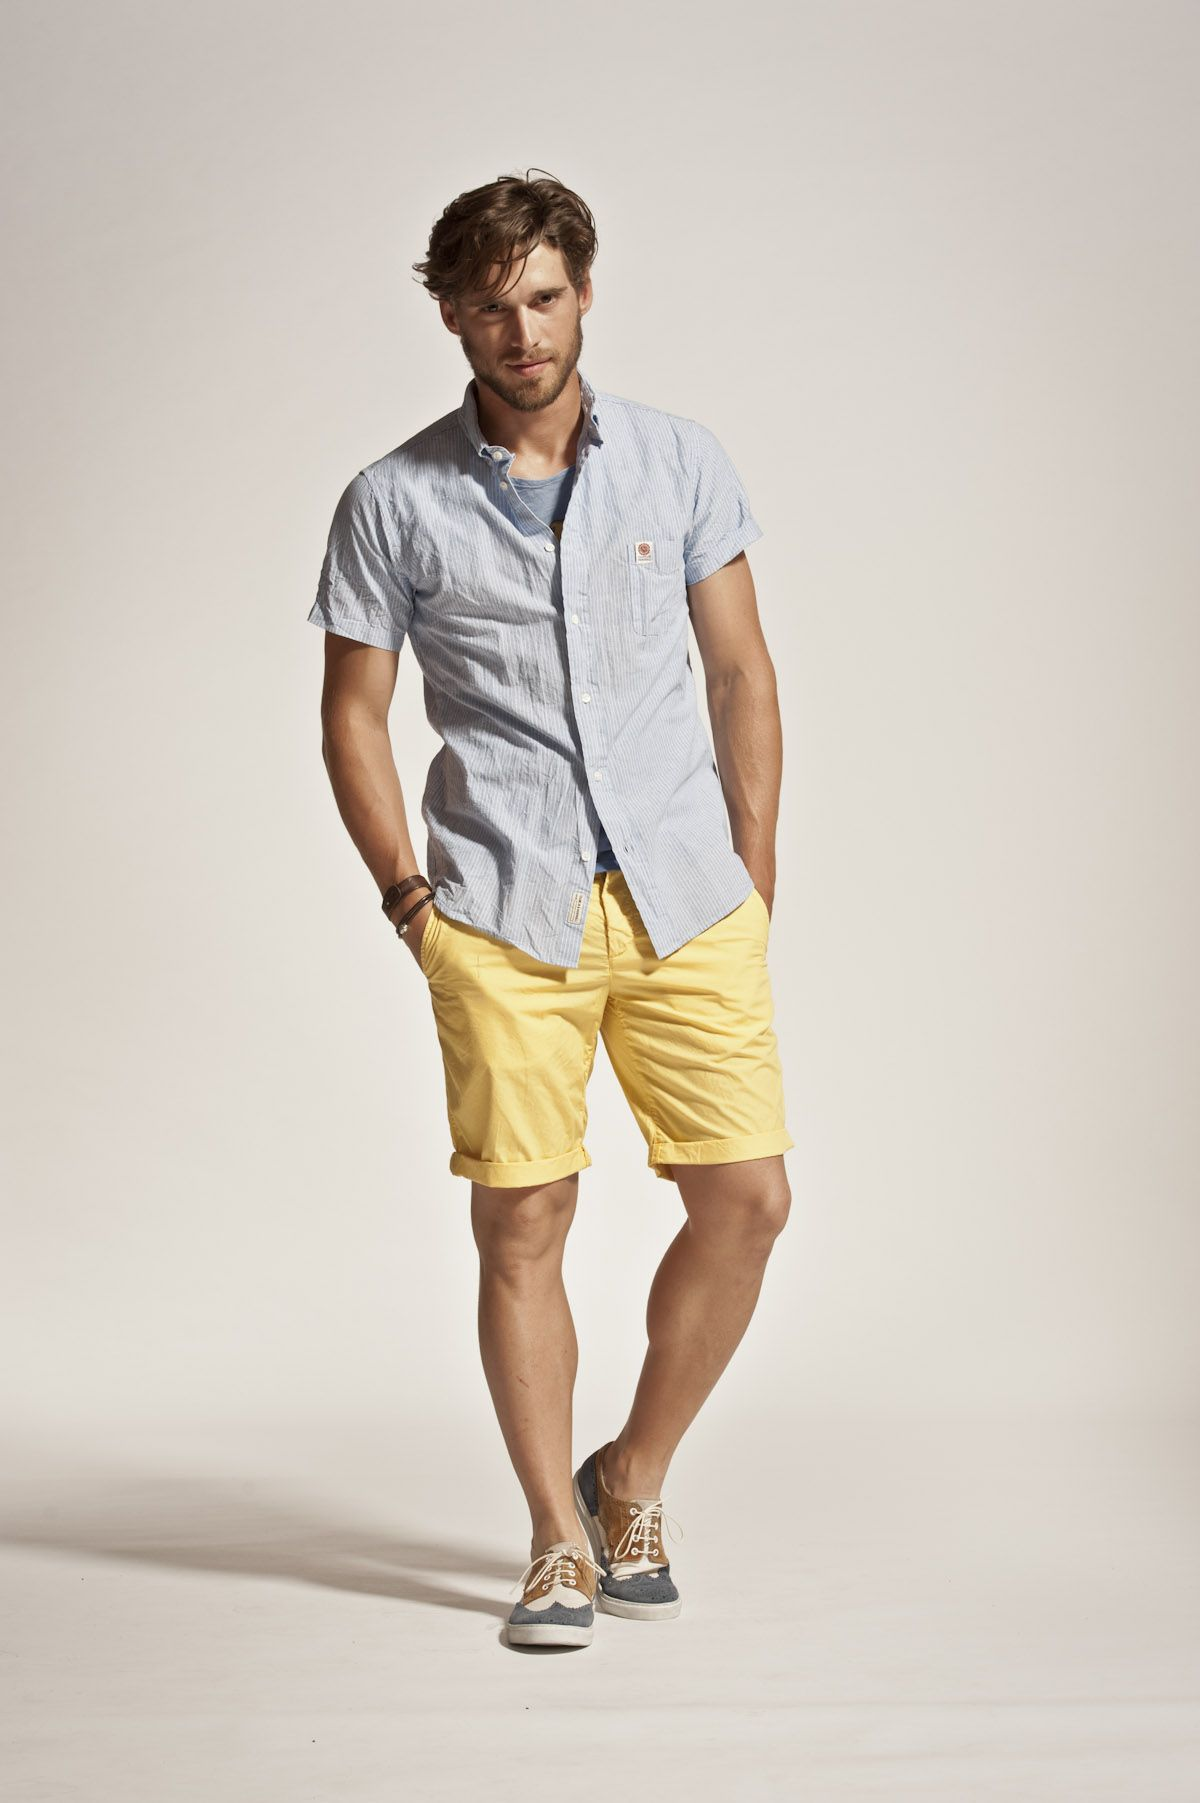 For him: bright yellow shorts & comfy shirt by Franklin & Marshall